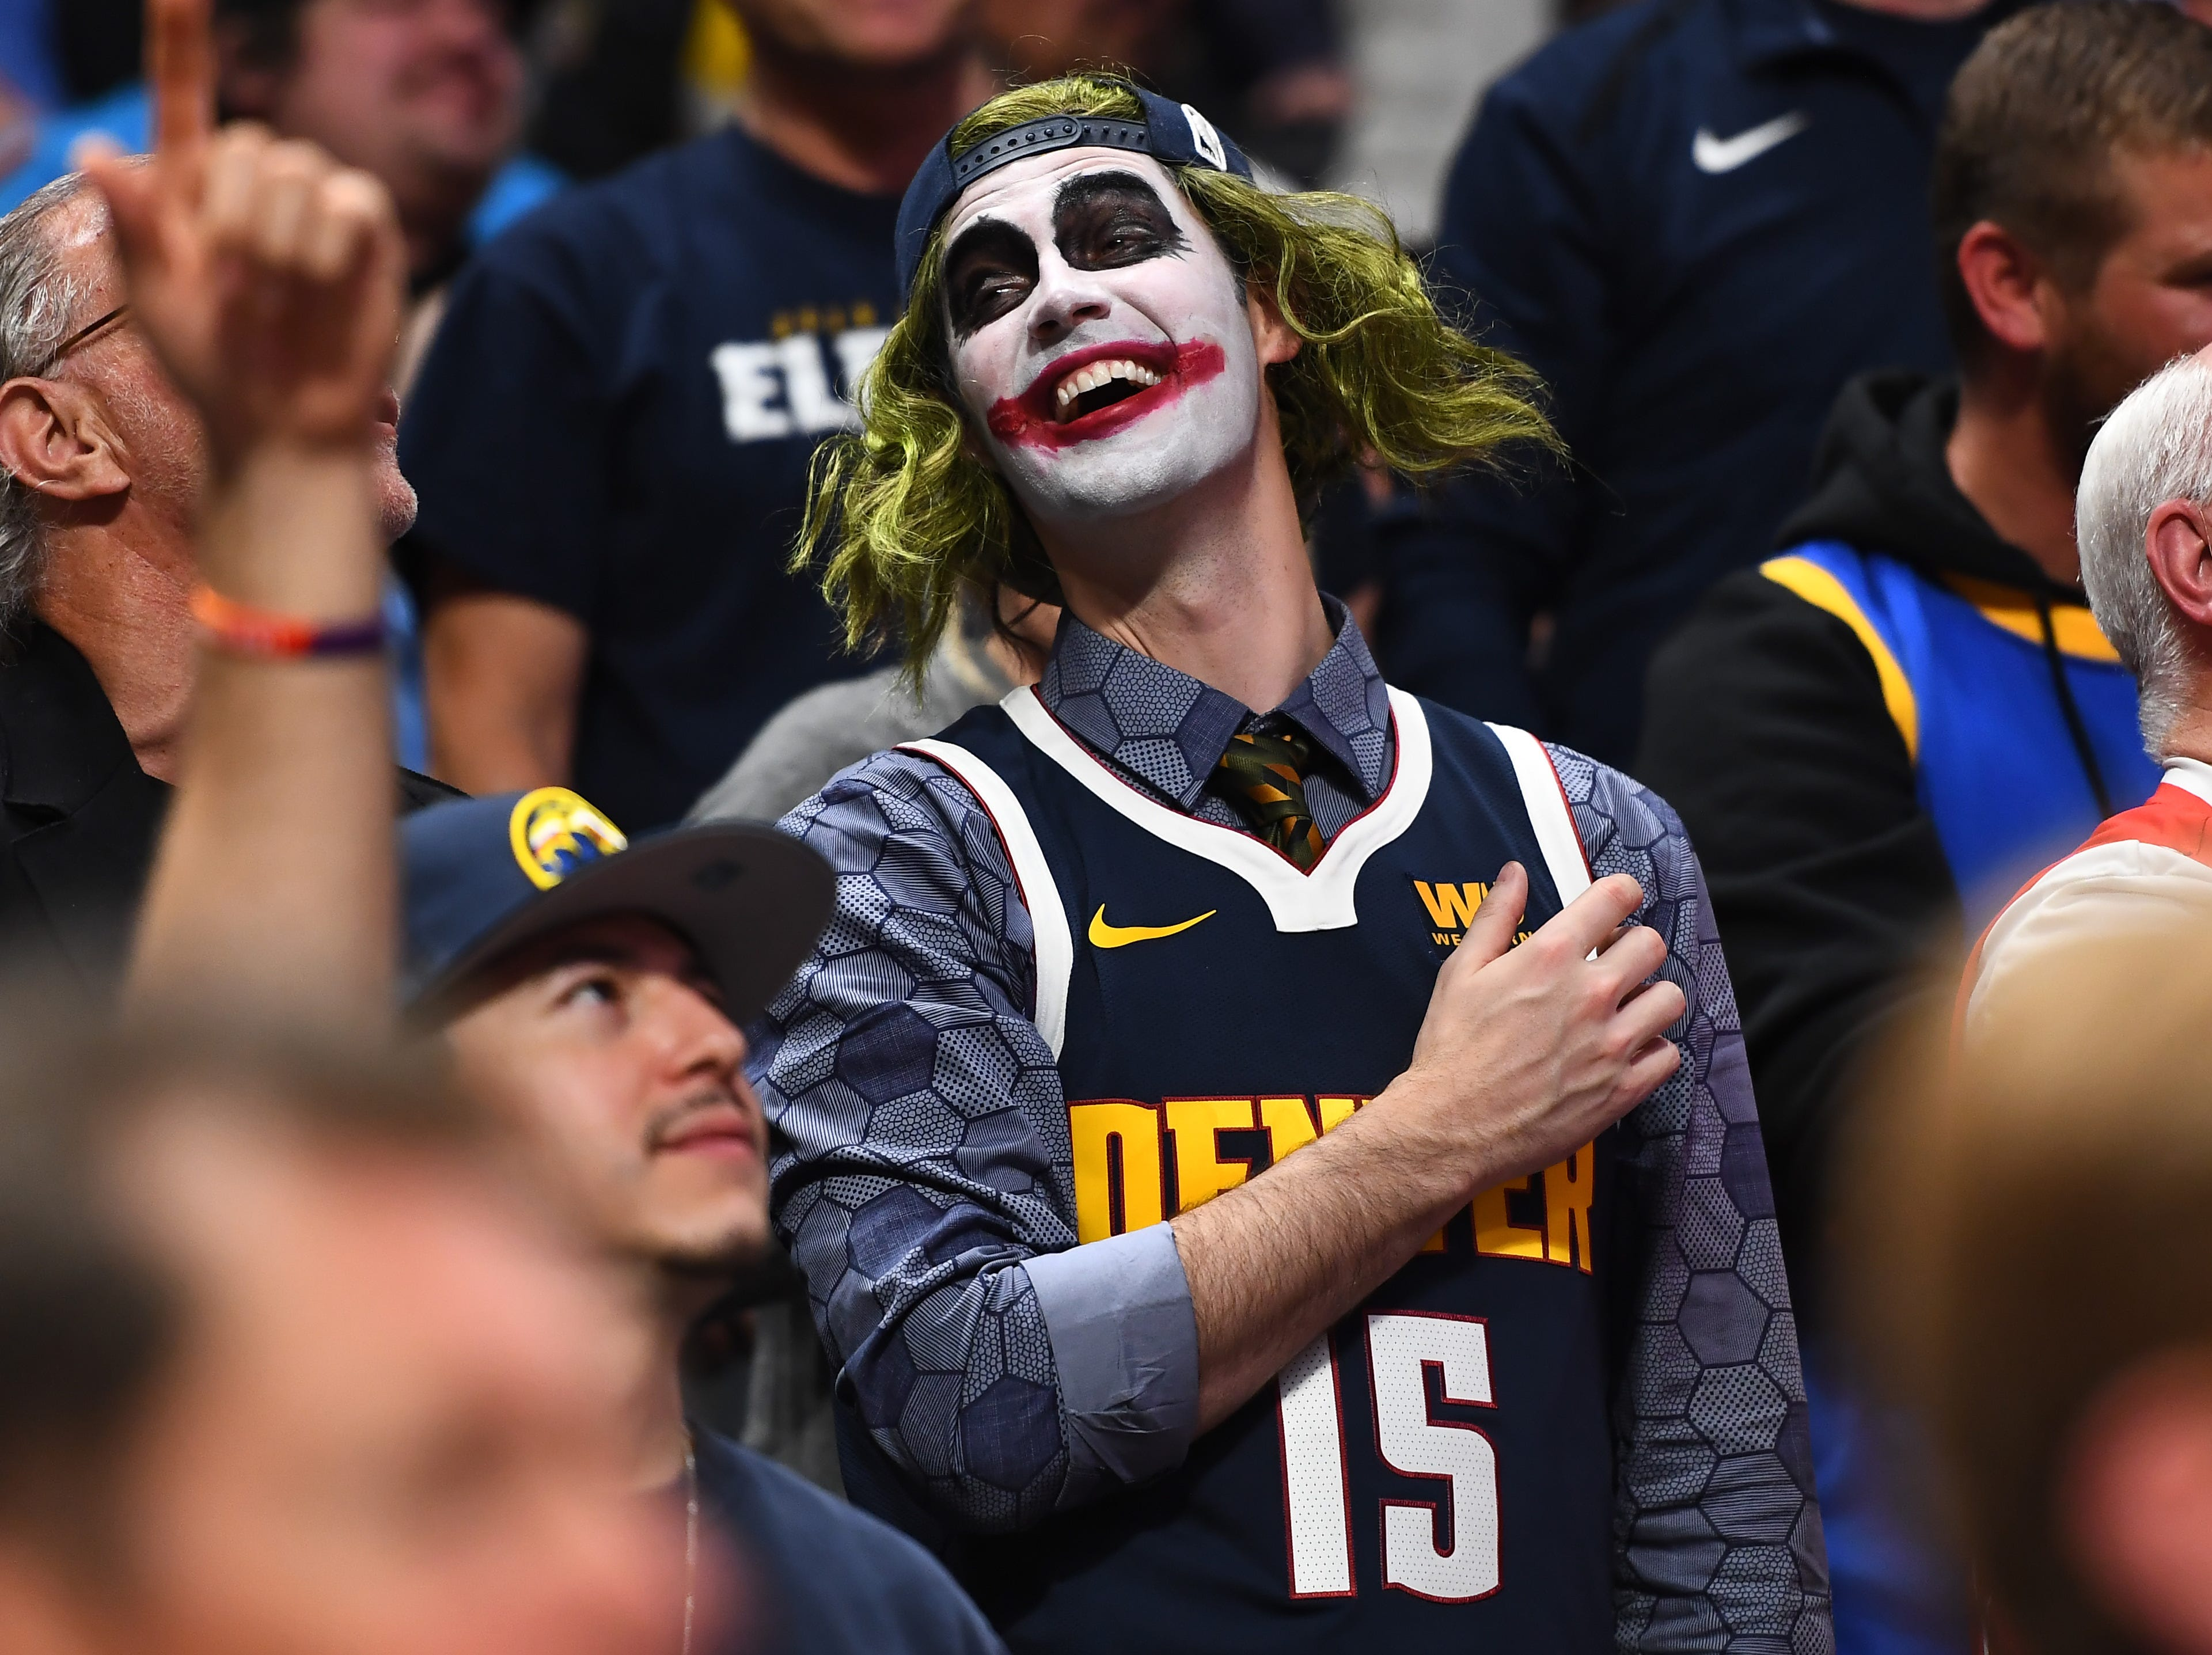 May 7: A Denver Nuggets fan dresses as the Joker for center Nikola Jokic in Game 5 against the Portland Trail Blazers.